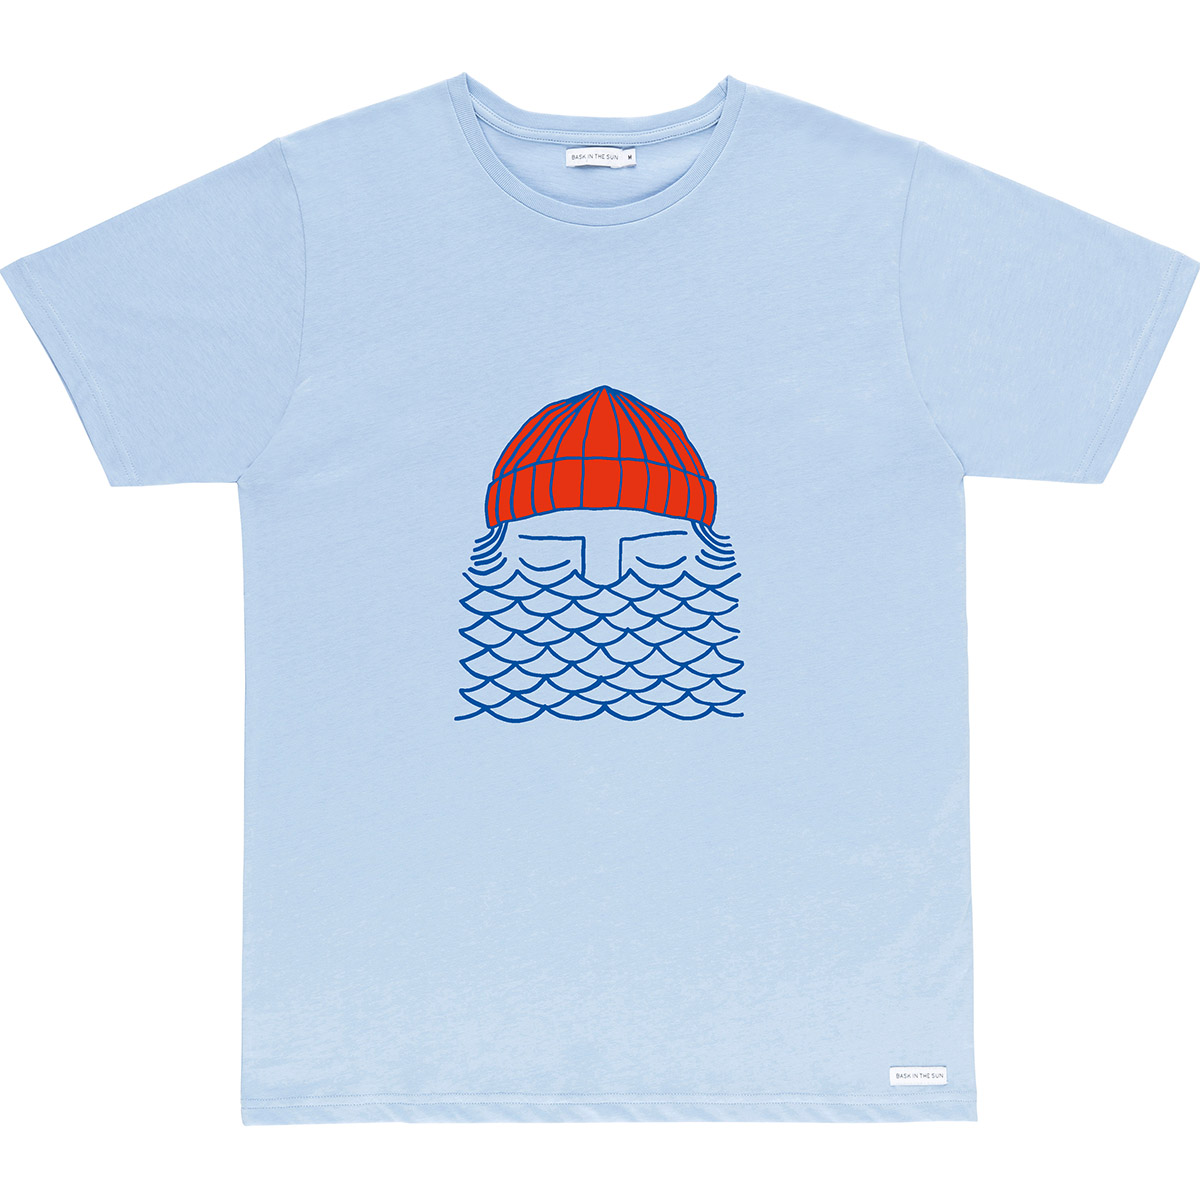 Bask in the Sun - T-shirt en coton bio light blue to the sea